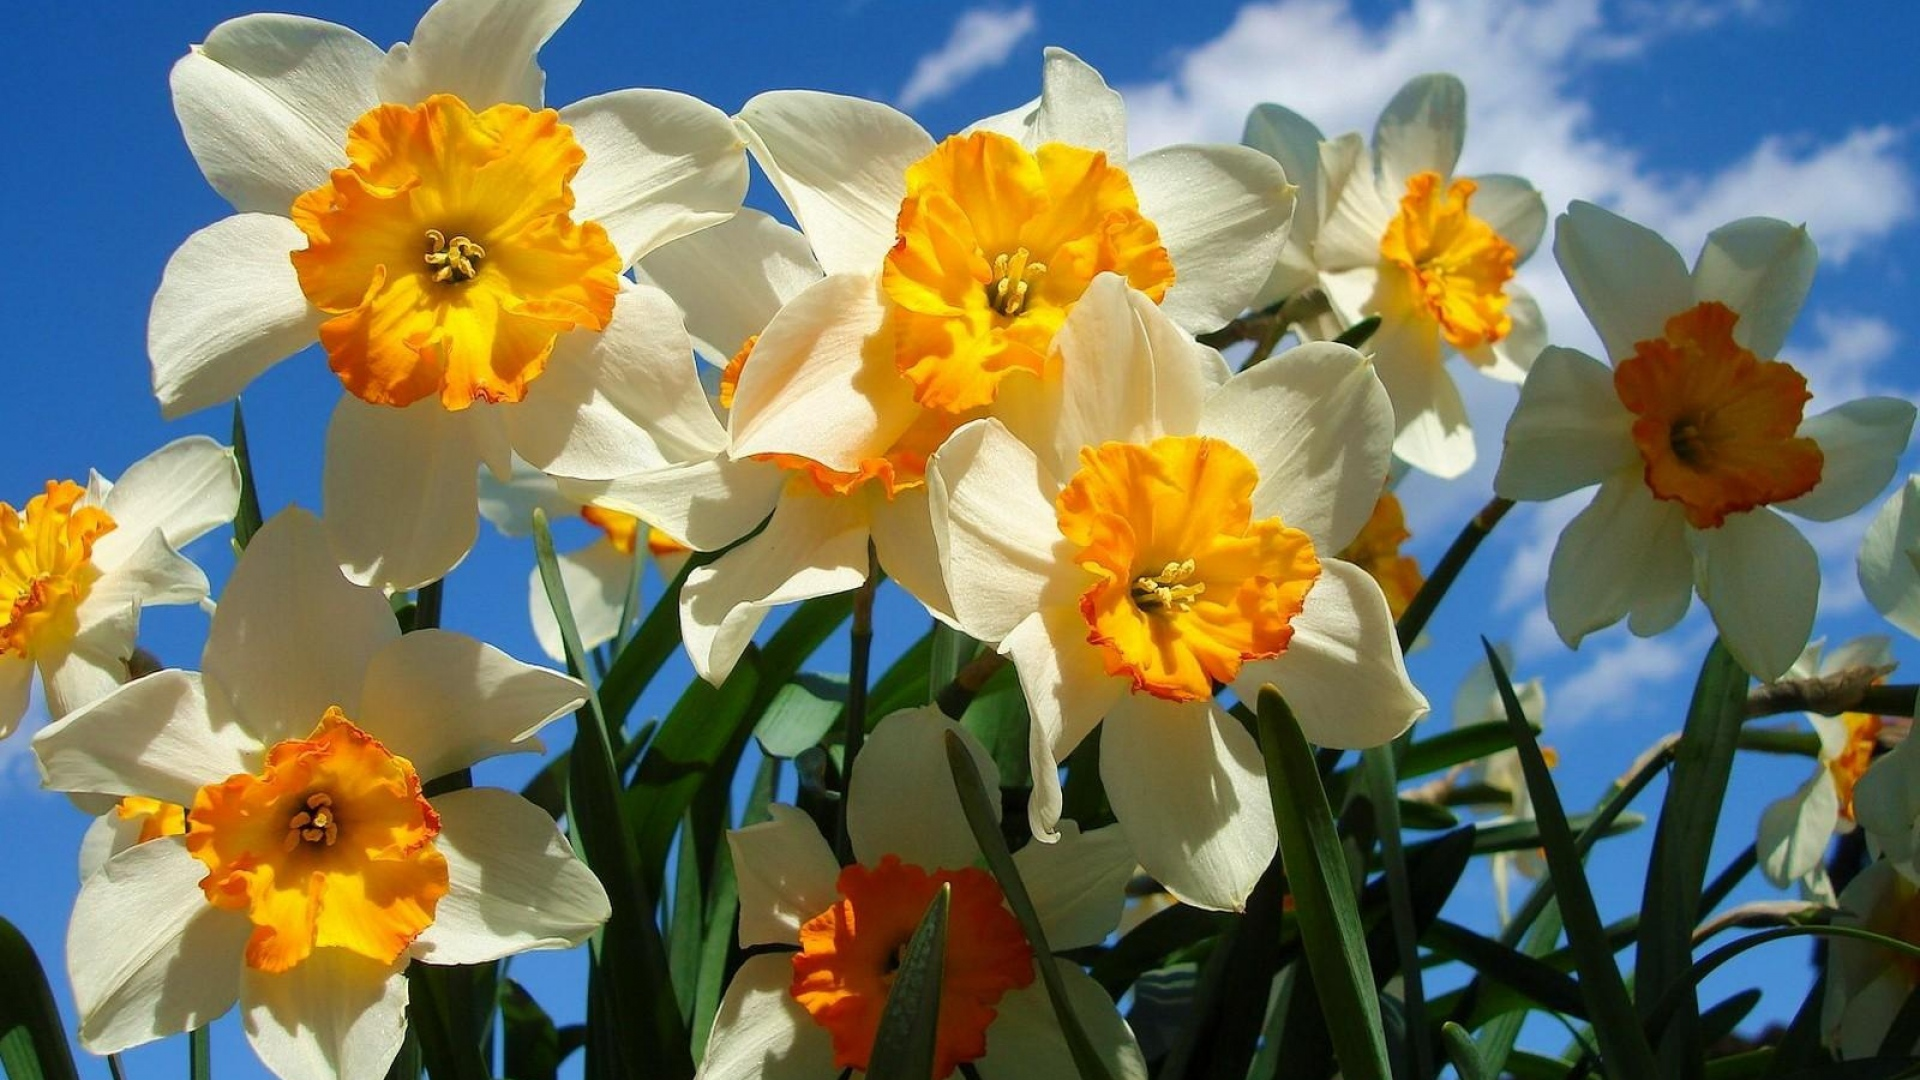 download wallpaper 1920x1080 daffodils flowers sky spring